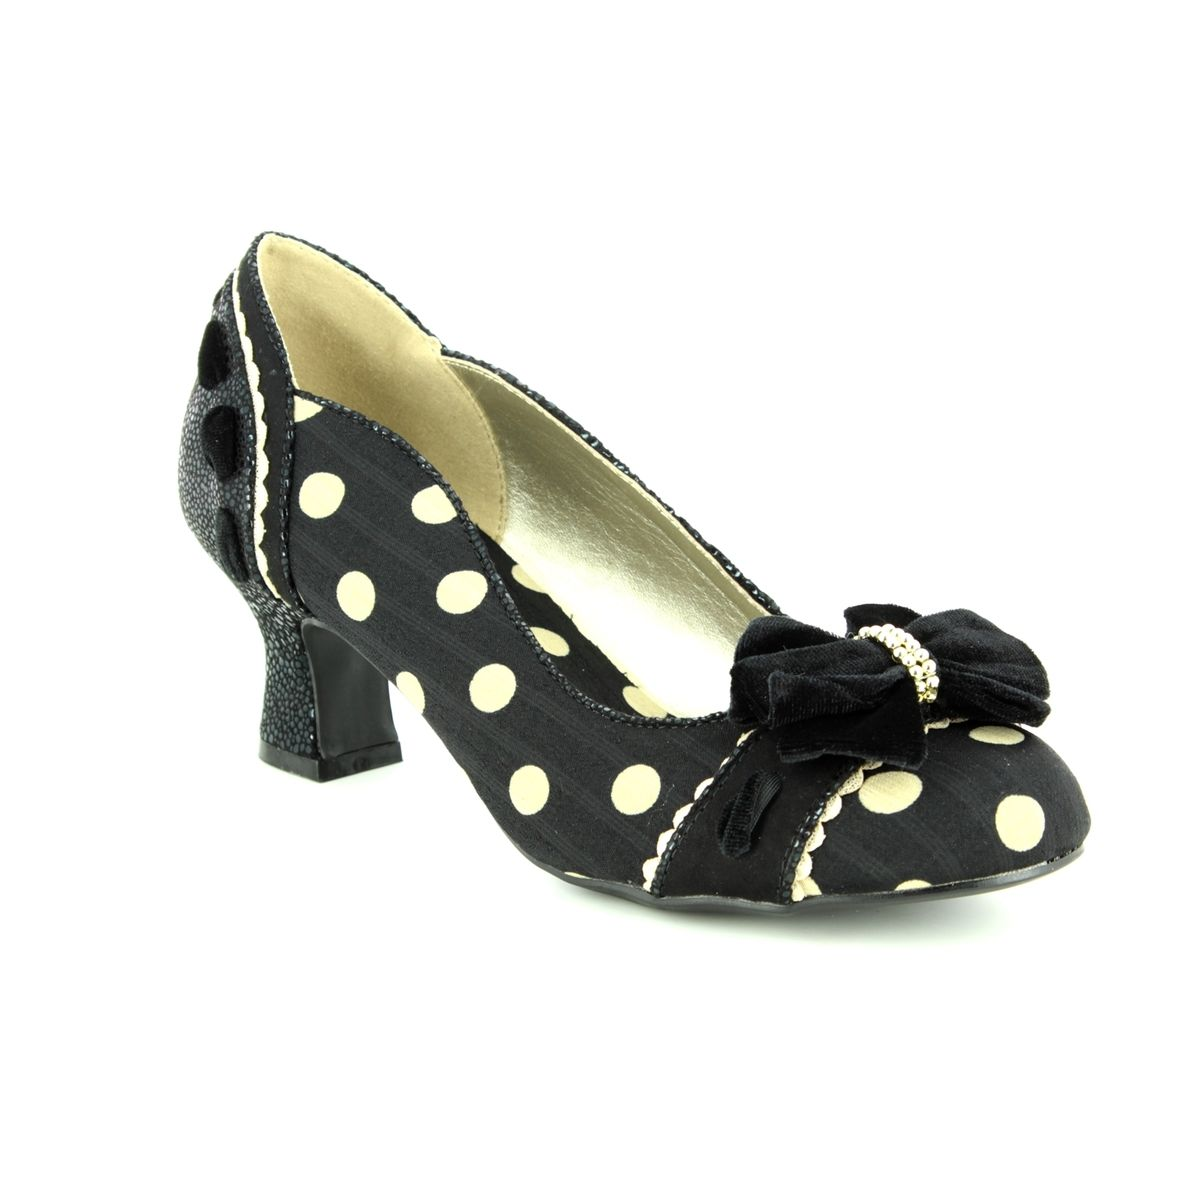 7c8551a73a1f8d Ruby Shoo Heeled Shoes - Black Spots - 09220/32 RHEA